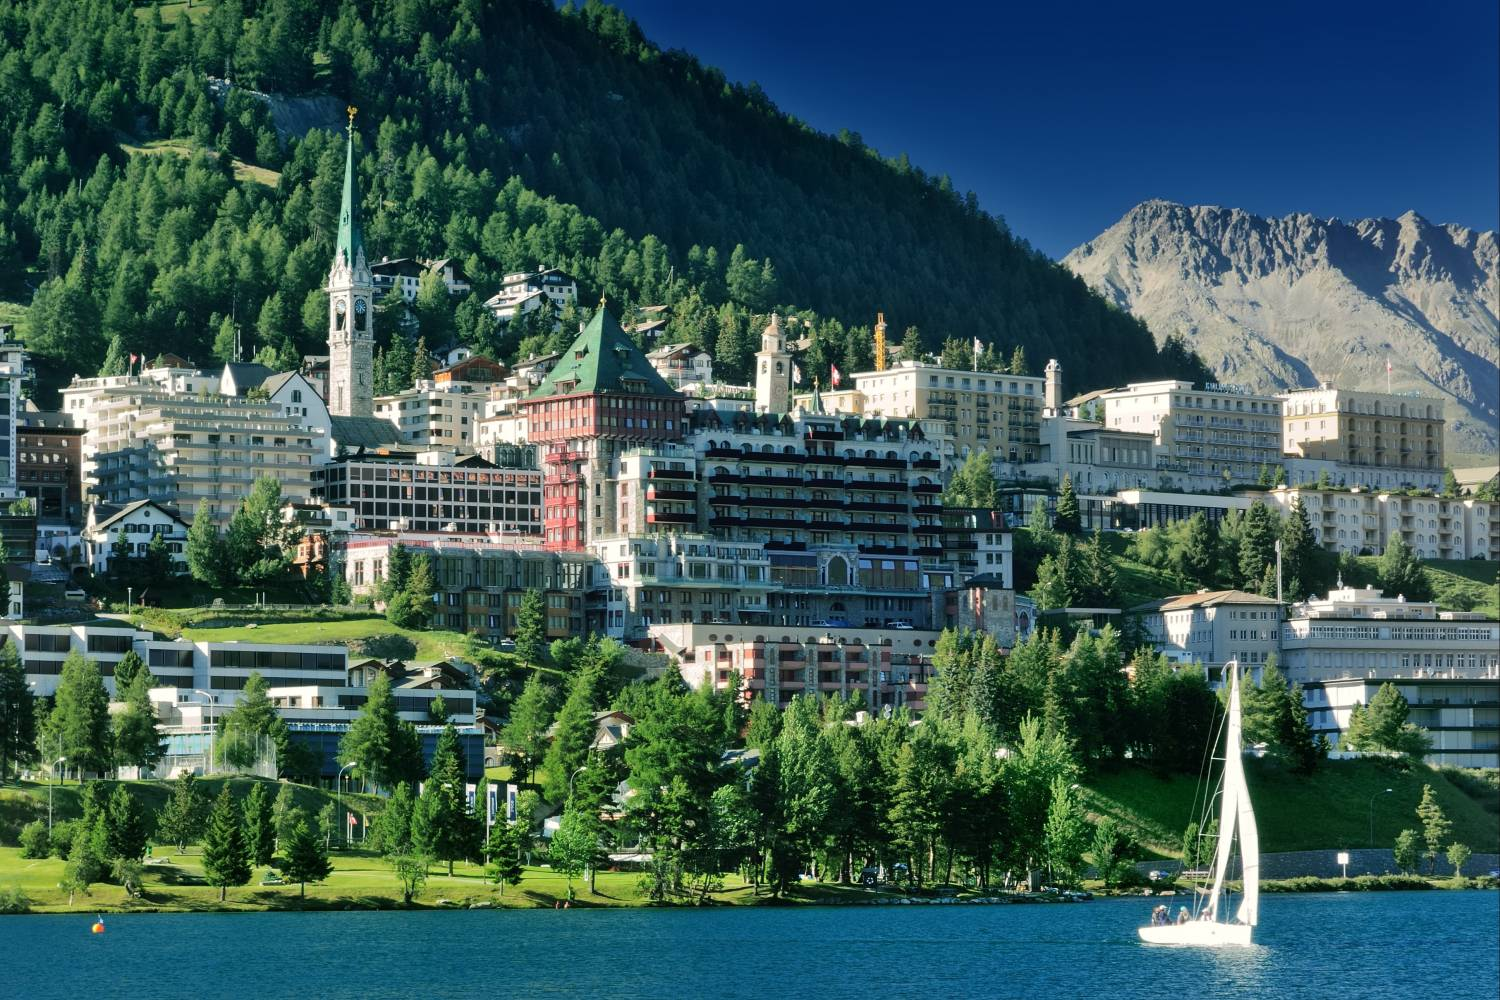 Enjoy a private chef after an amazing day in Saint Moritz - Take a Chef